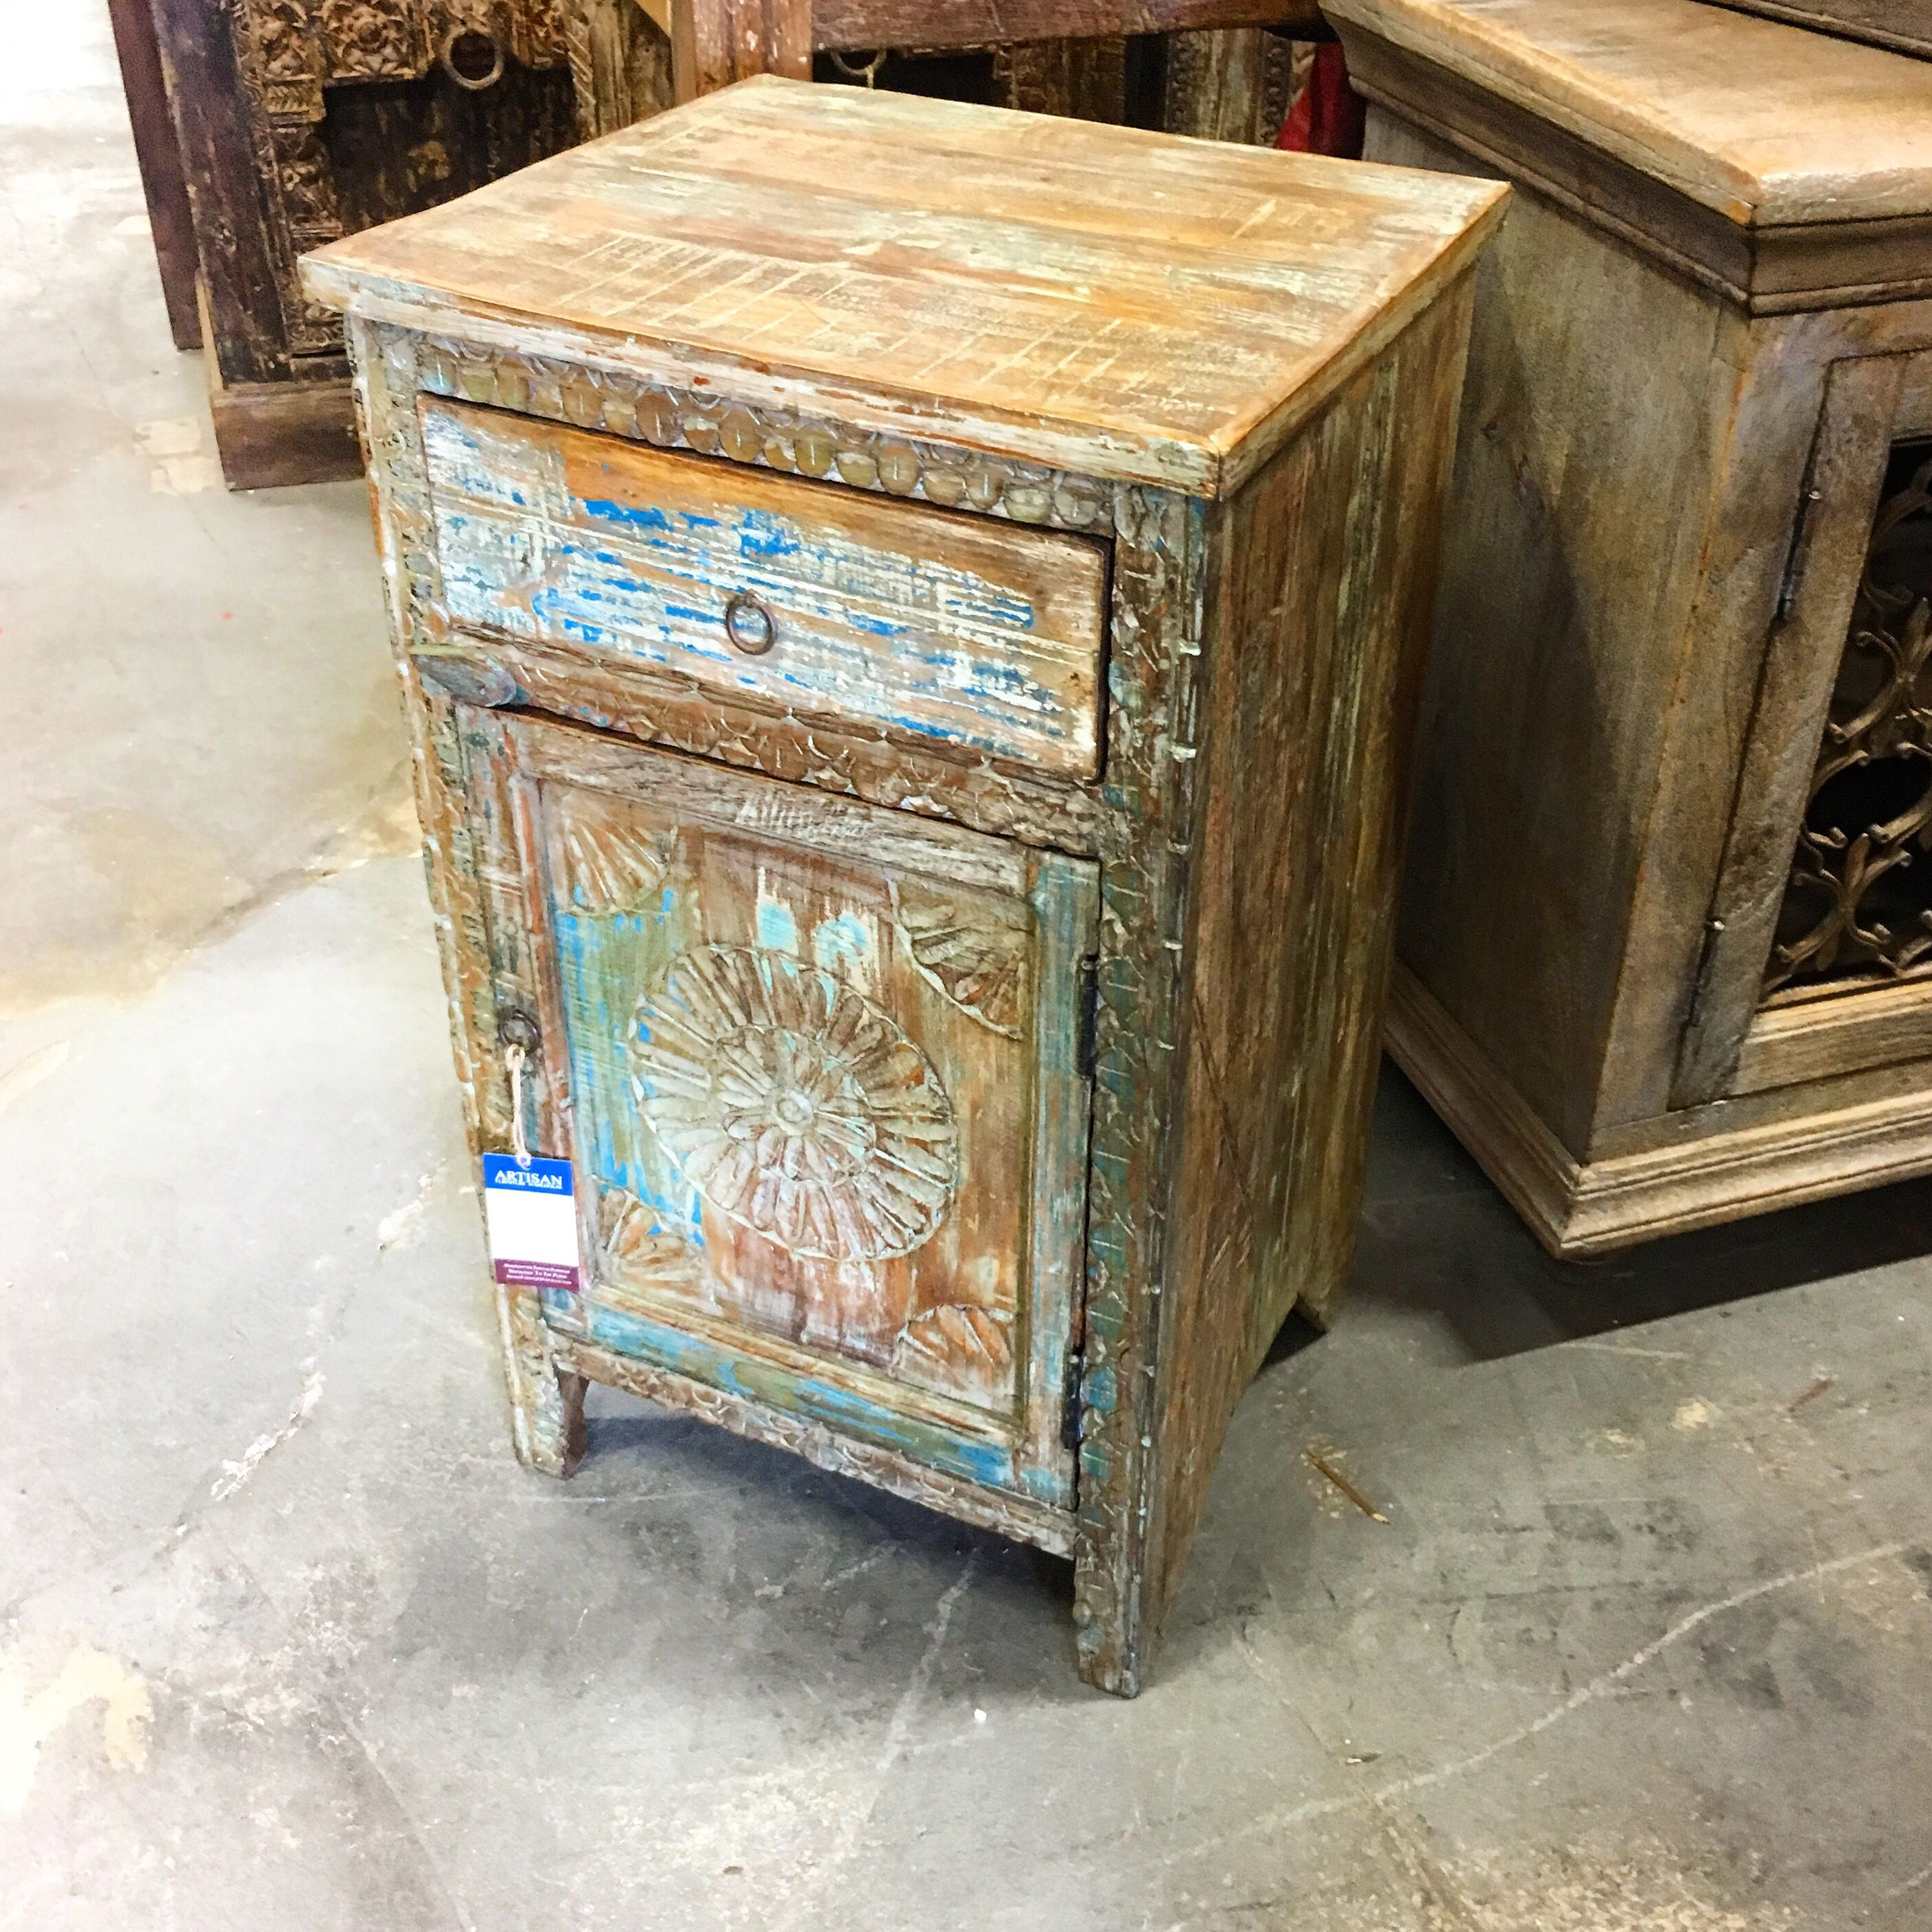 Distressed Reclaimed Wood Nightstand Item 712907 Measures 18x16x31 High 199 Each Miamifurniture Furniture Furnituremiami